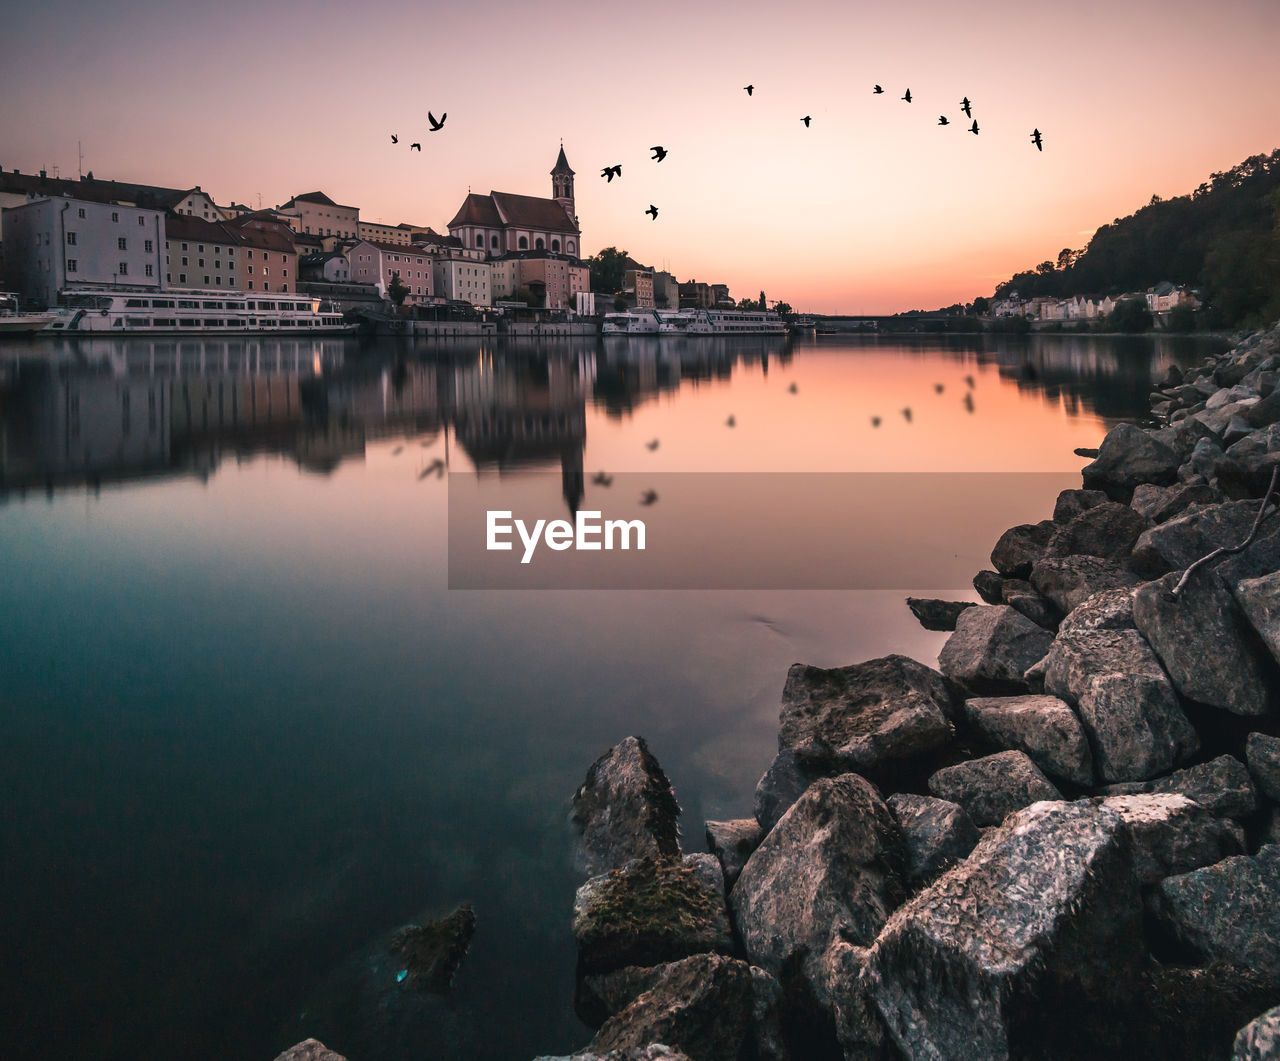 water, sky, sunset, reflection, built structure, building exterior, vertebrate, rock, nature, architecture, bird, animal themes, animal, rock - object, beauty in nature, solid, waterfront, flying, group of animals, no people, outdoors, flock of birds